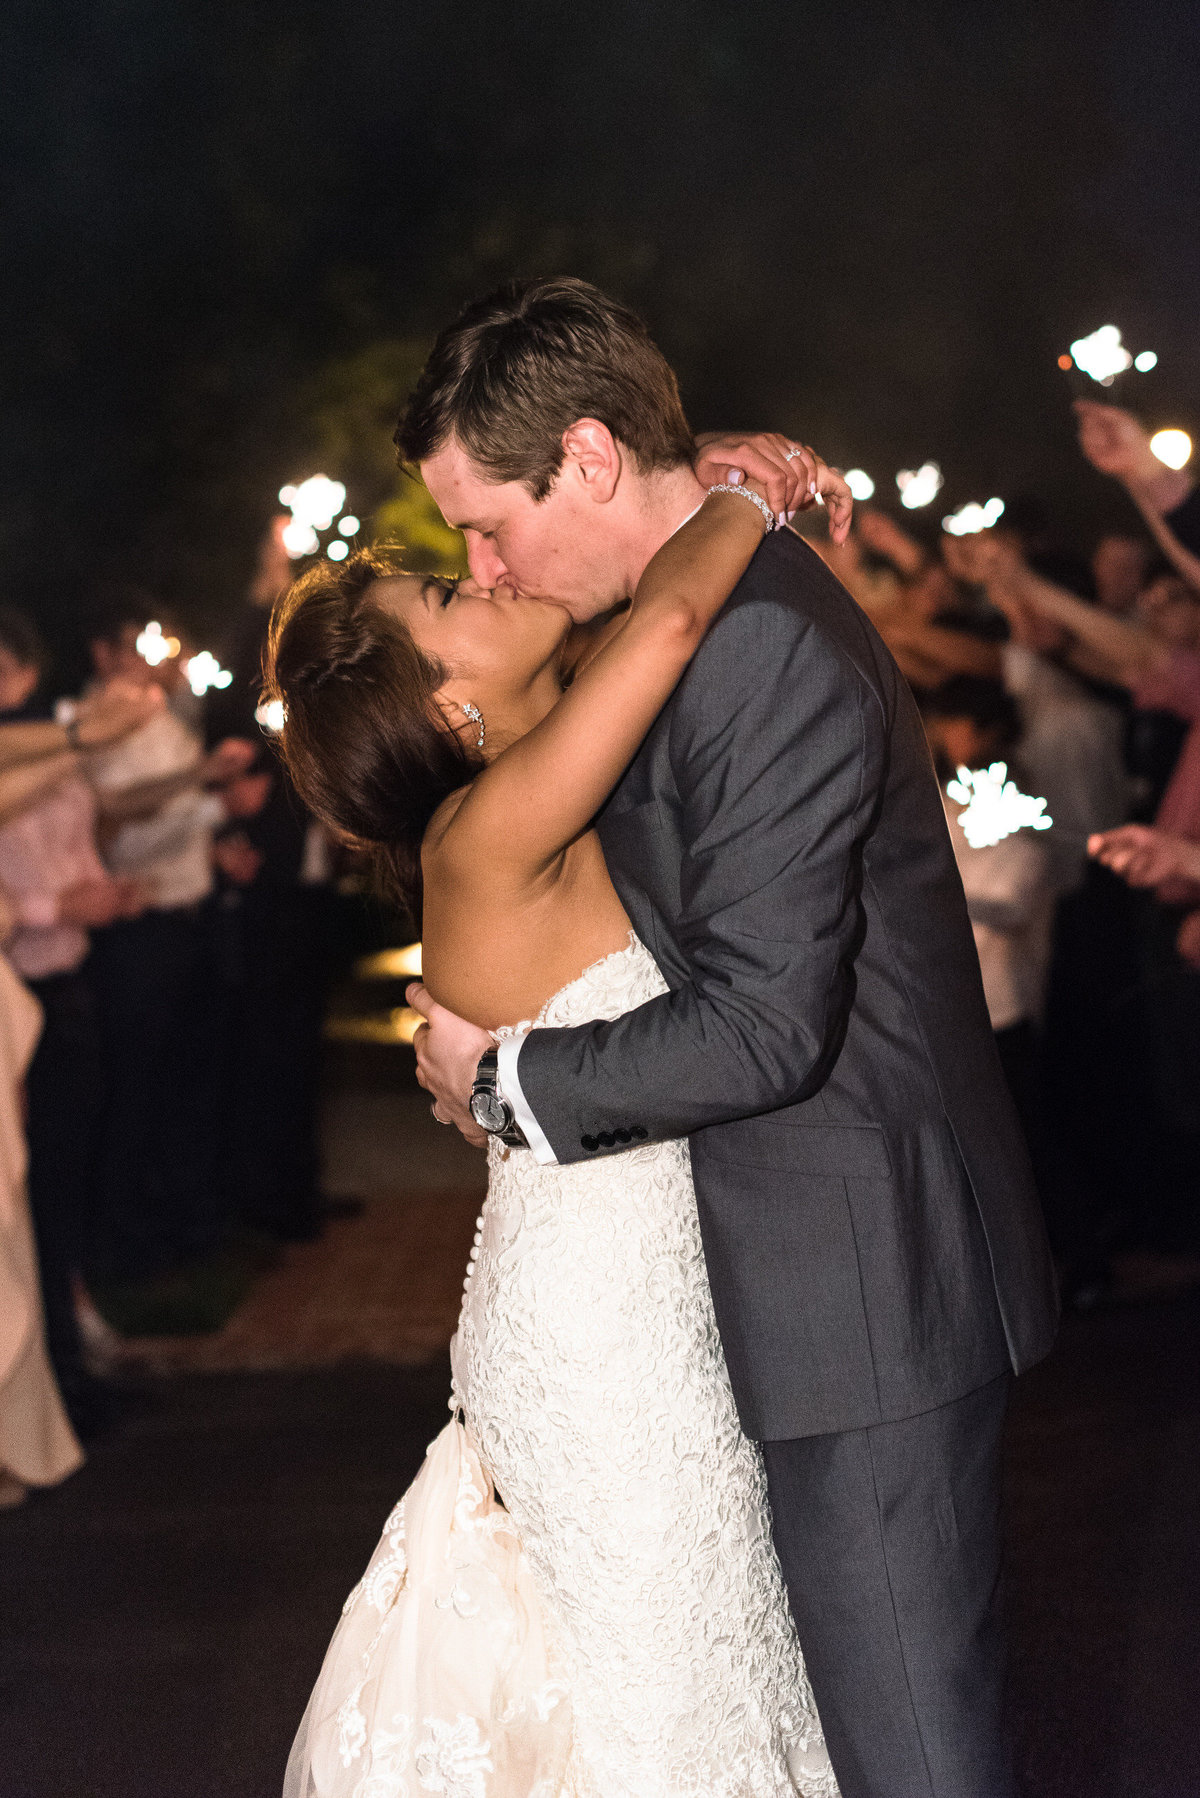 hunt phelan wedding exit photo